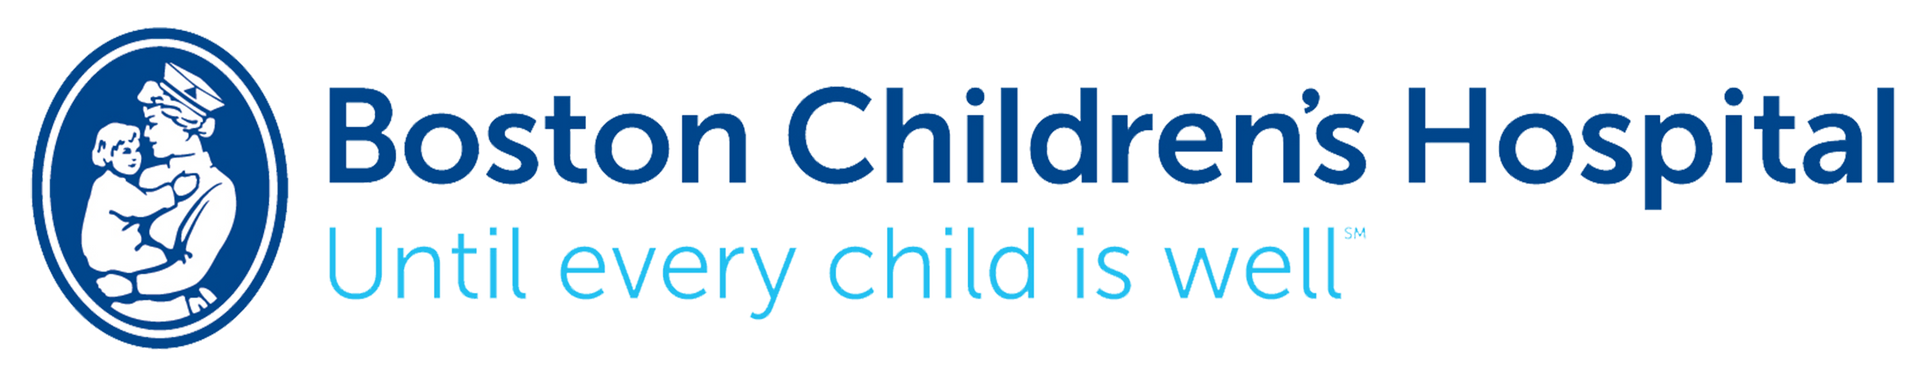 childrens hosp_new logo.png